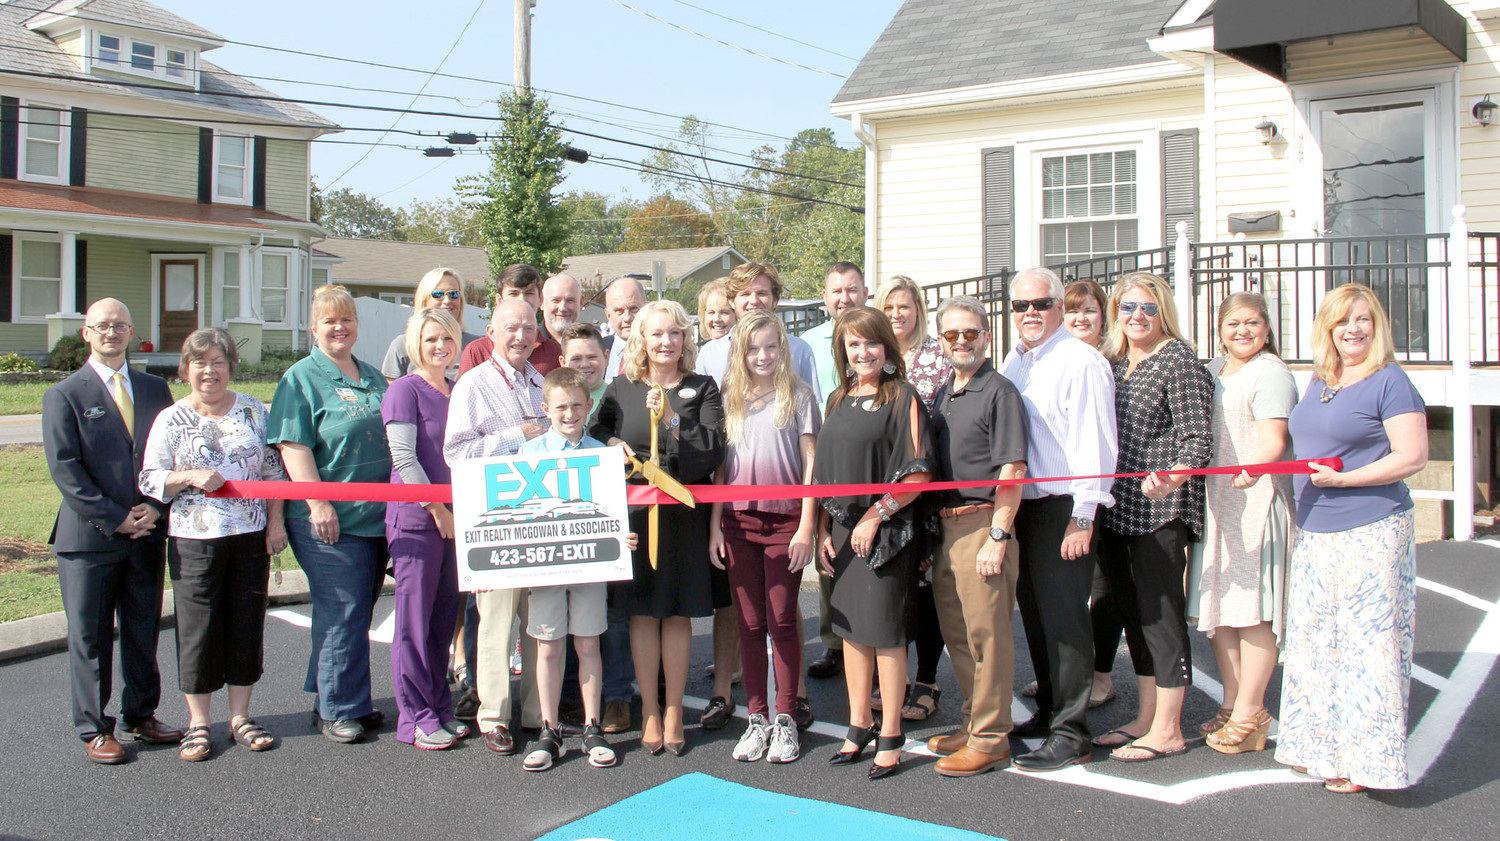 THE CLEVELAND/BRADLEY Chamber of Commerce recently held a ribbon cutting for Exit Realty. Above, cutting the ribbon, is Patricia McGowan, owner. Also, pictured above are family members, Mayor Tom Rowland, Chamber staff and ambassadors. Exit Realty recently opened its doors to the community at 2025 Chambliss Ave. The firm provides experienced realty professionals that assist you when buying or selling property. These knowledgeable professionals are trained in specialties such as negotiation and market trends. If you are in the market, contact Exit Realty at 423-567-3948 or visit their new location.